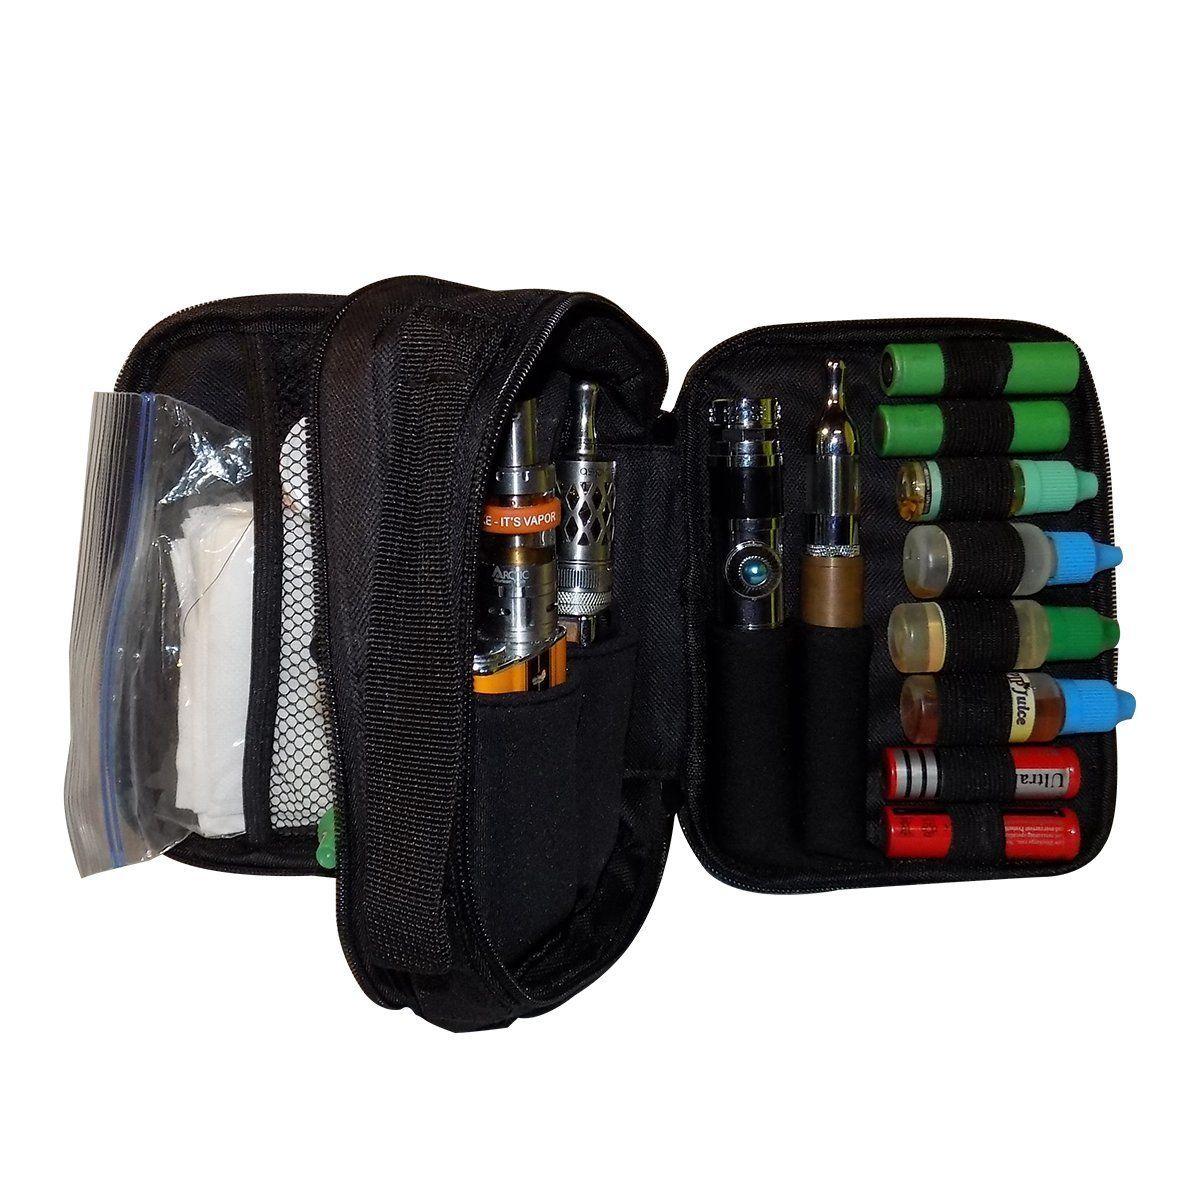 Kaseit Vape Carrying Case Double Sided Bag For Mod Accessories Keeps